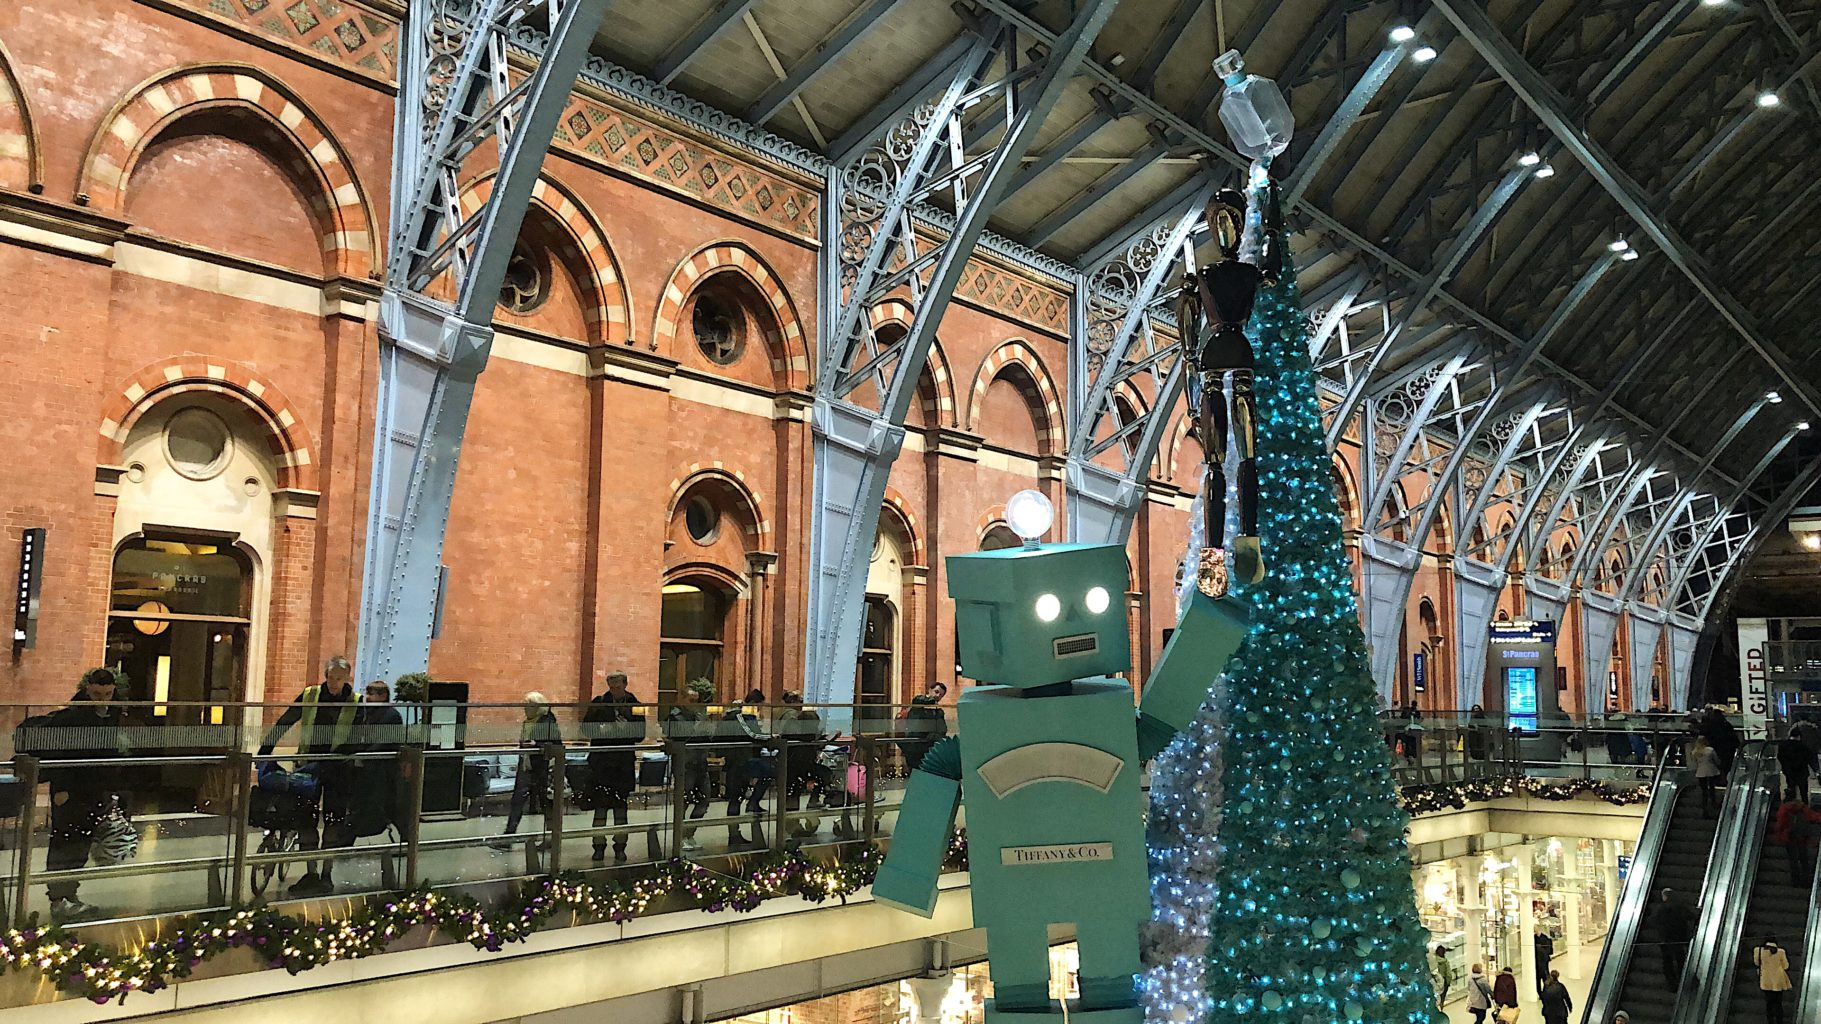 676d3f3c6 The Holidays Made by Tiffany have arrived at St. Pancras